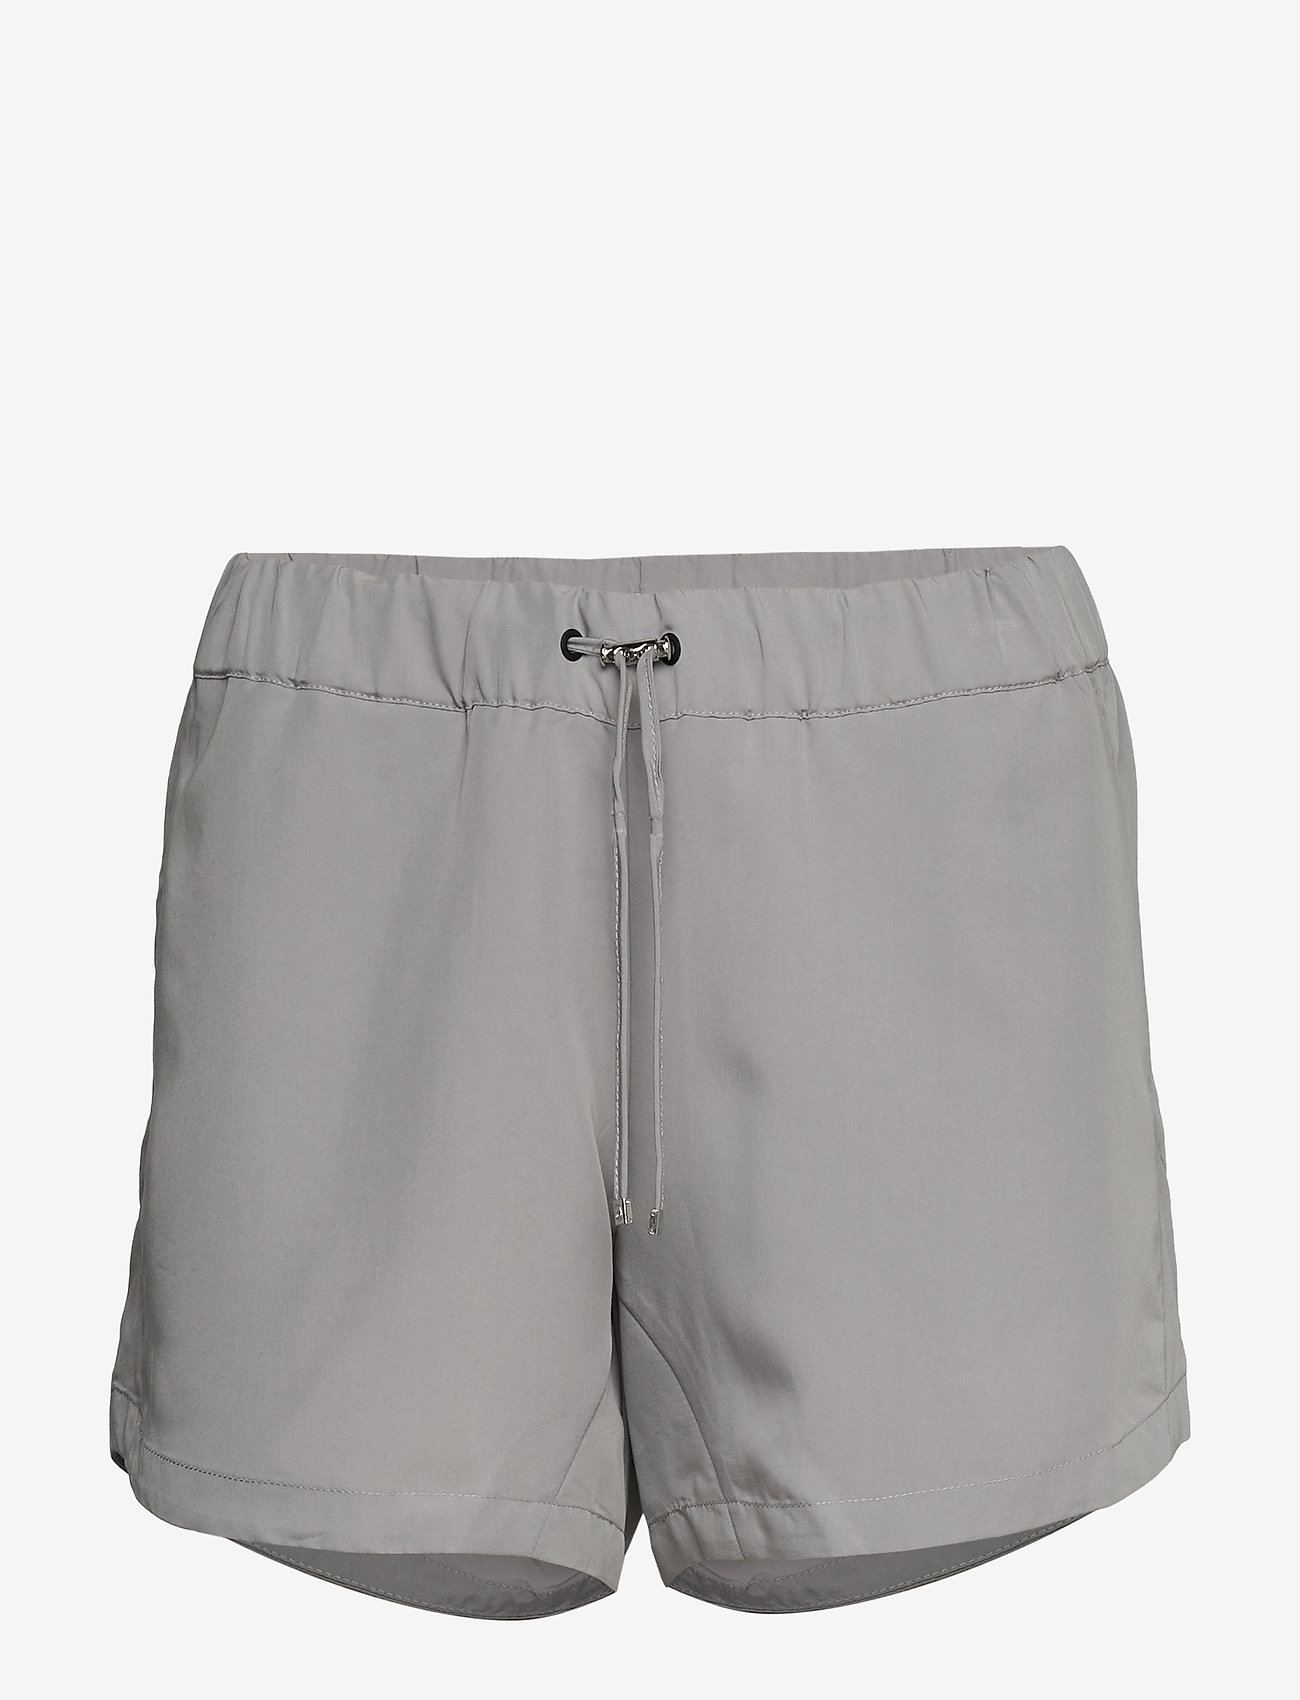 Sail Racing - W RACE WOVEN SHORTS - training shorts - dim grey - 0